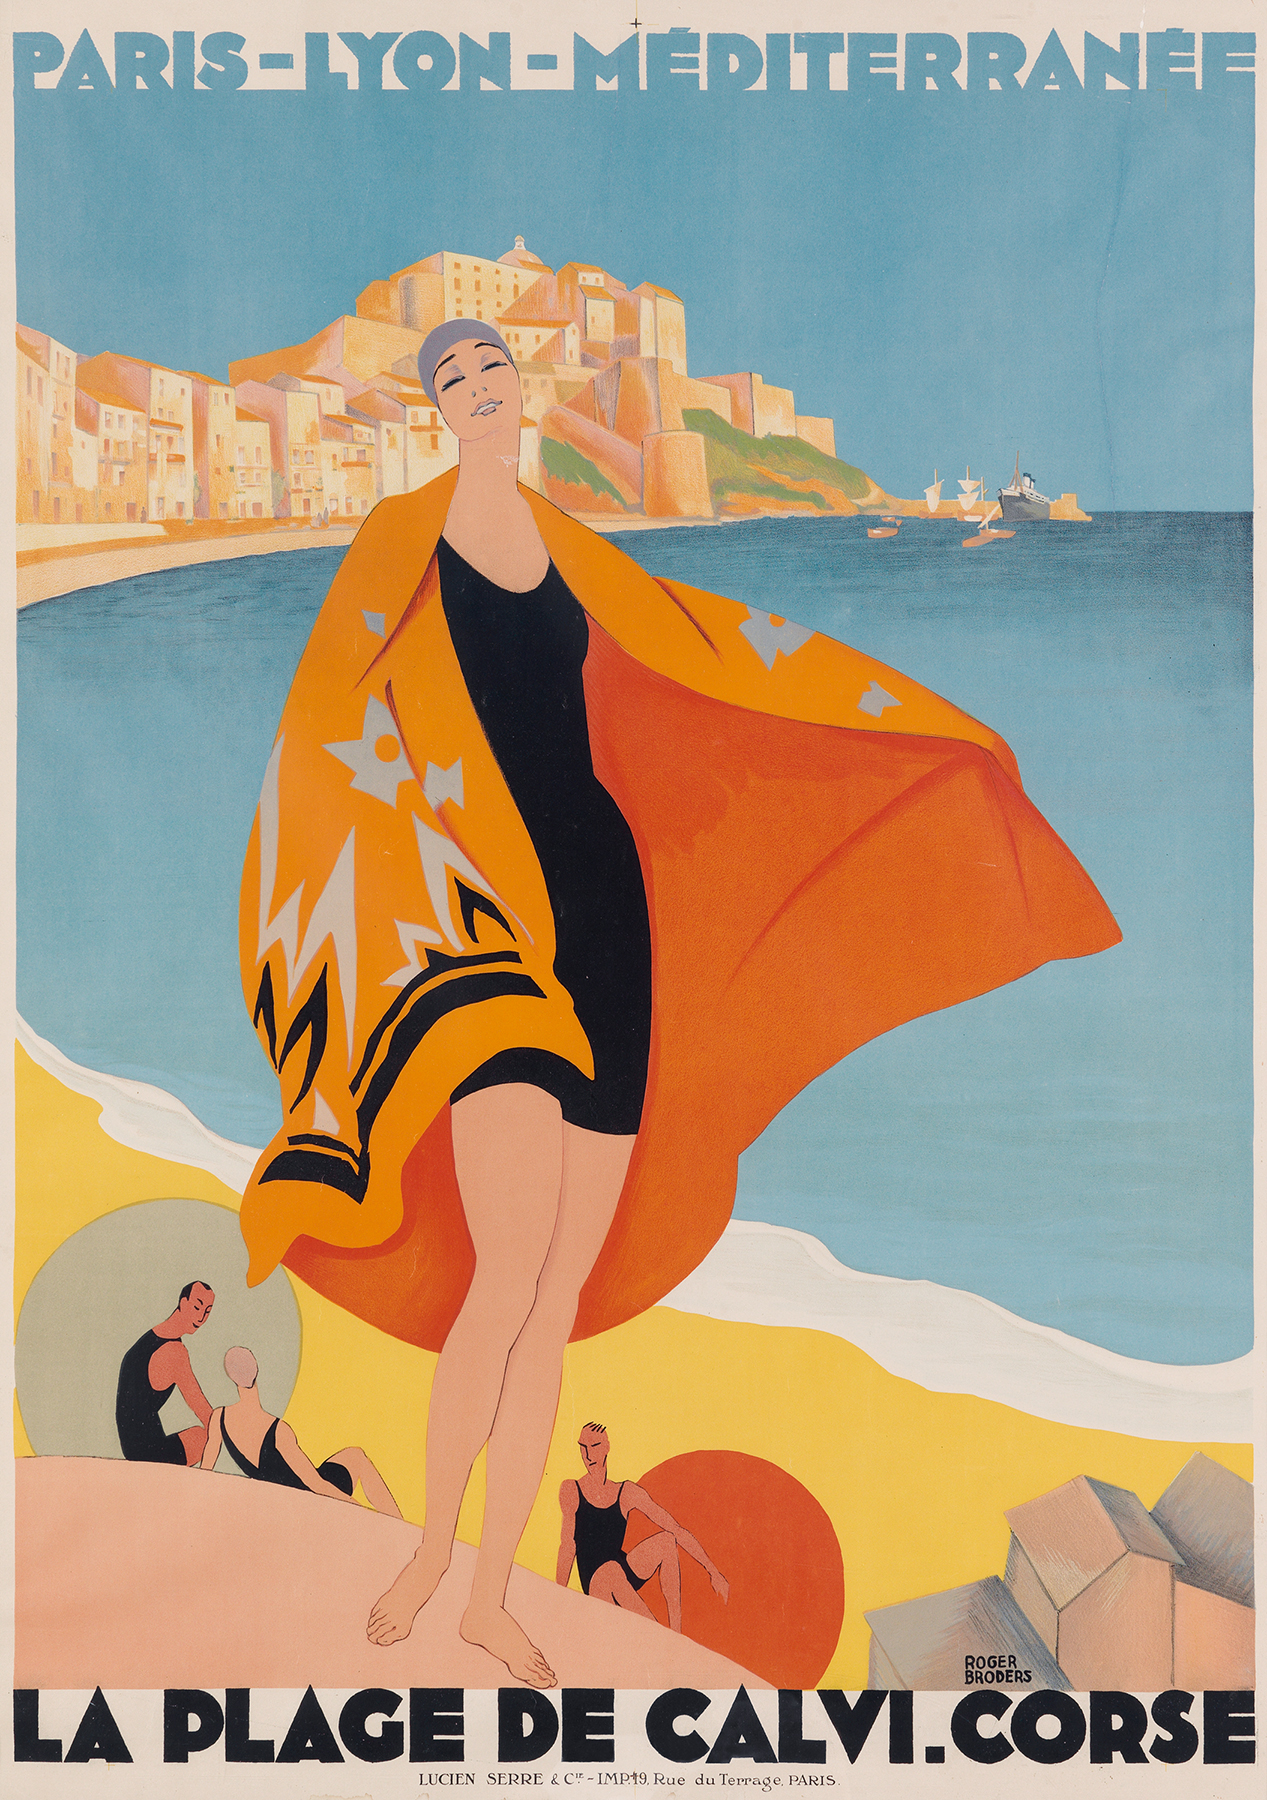 A 1928 travel poster touting Corsica, designed by Roger Broders, who clearly took inspiration from Botticelli.